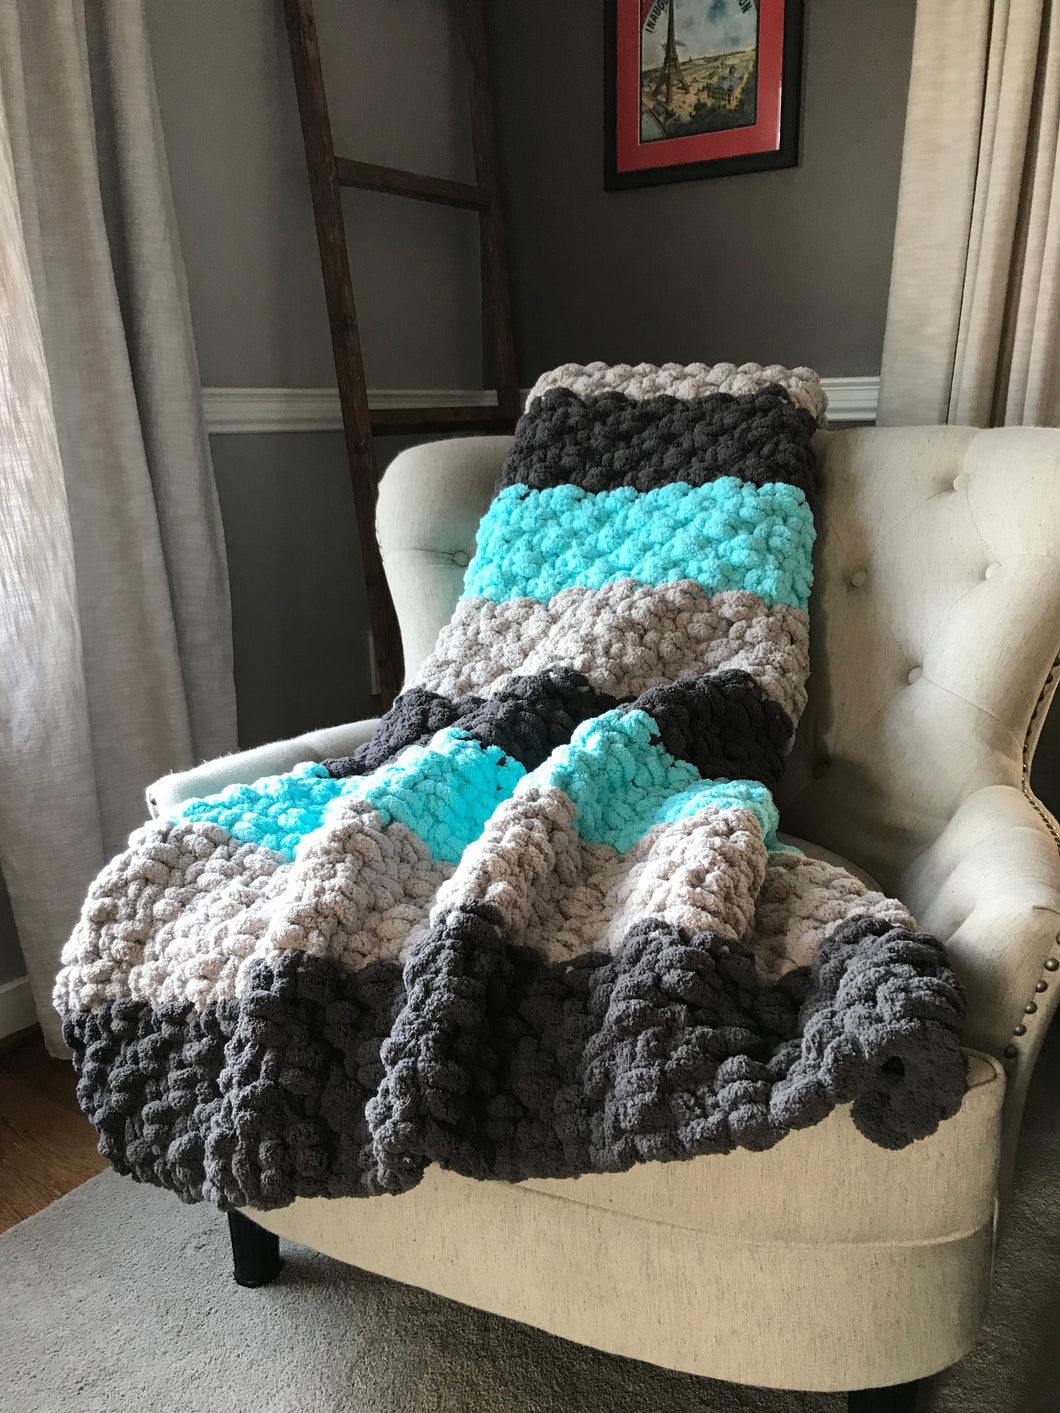 Chunky Knit Blanket | Aqua and Gray Knit Throw - Hands On For Homemade